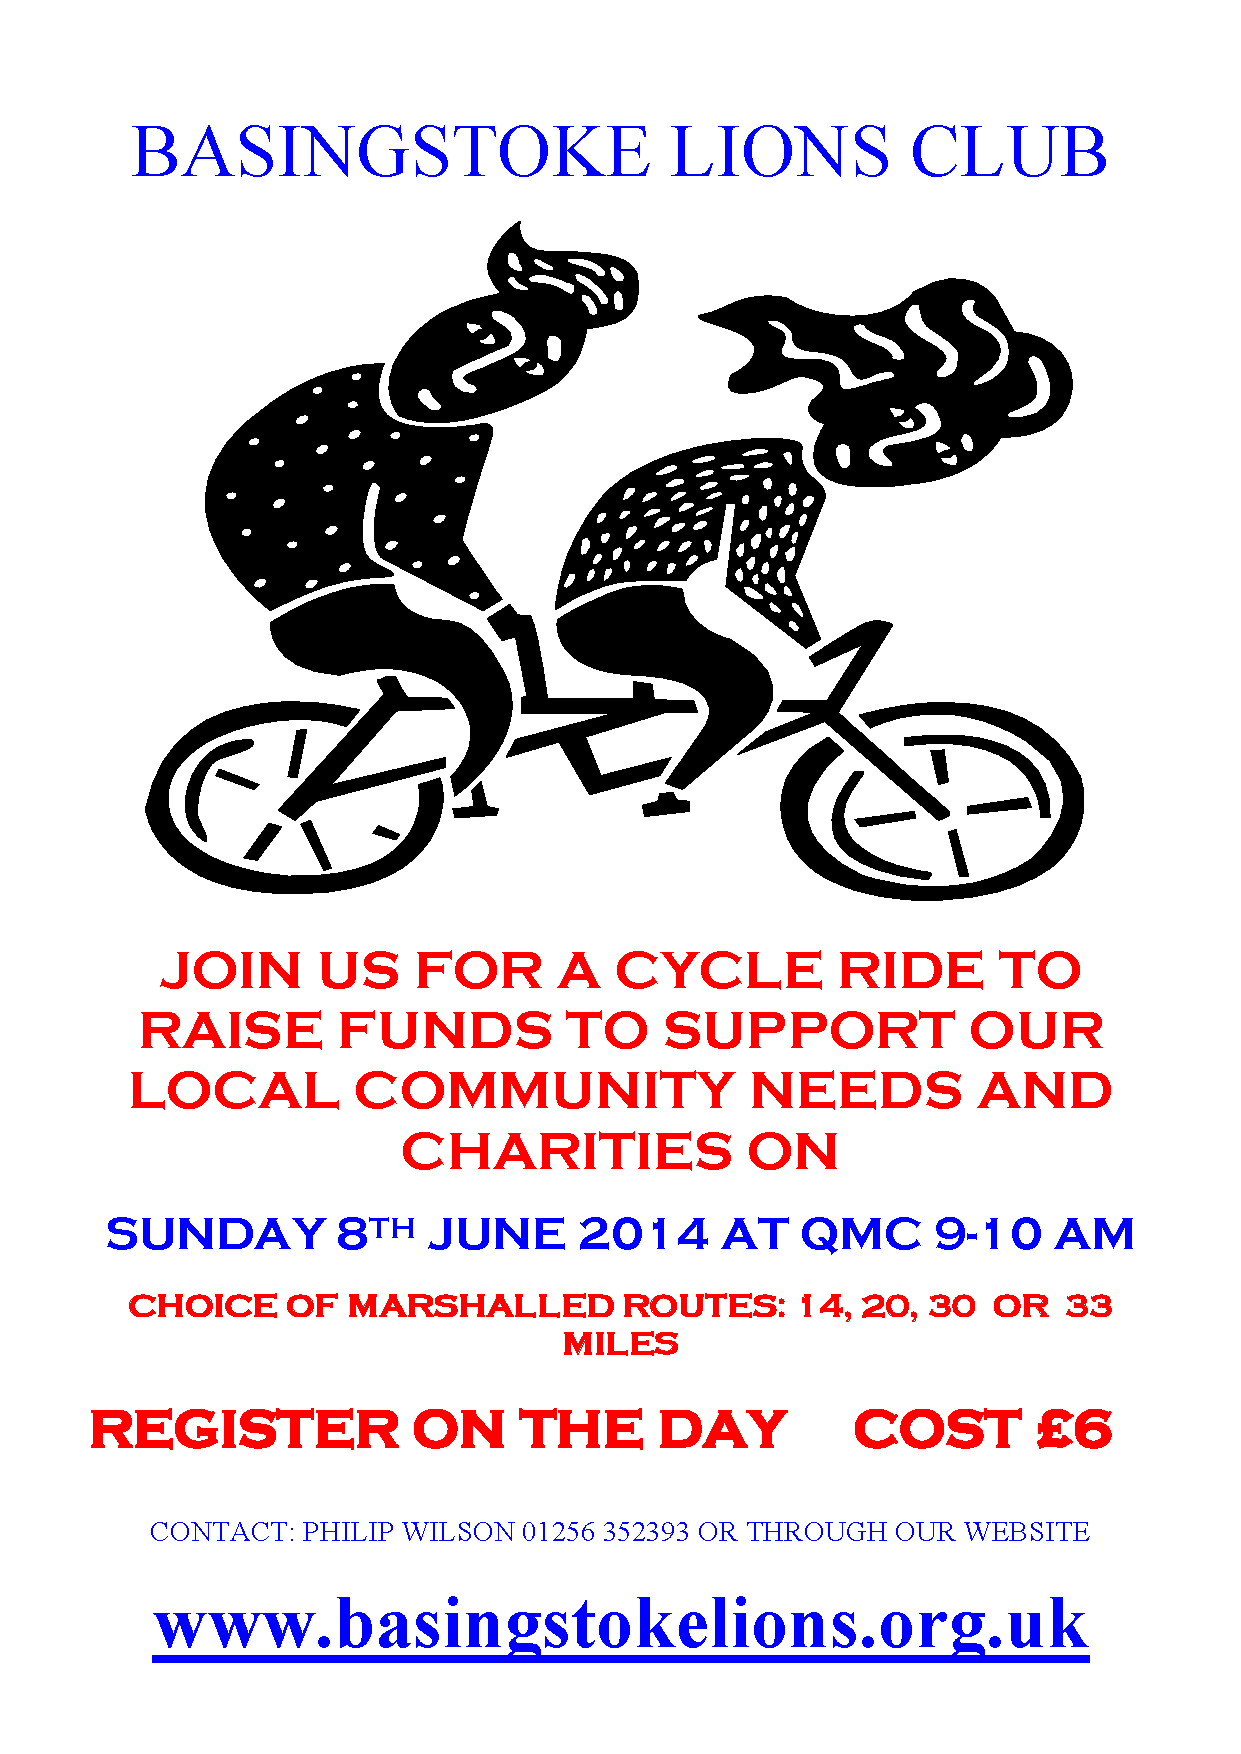 Basingstoke Lions Club - Cycle Ride